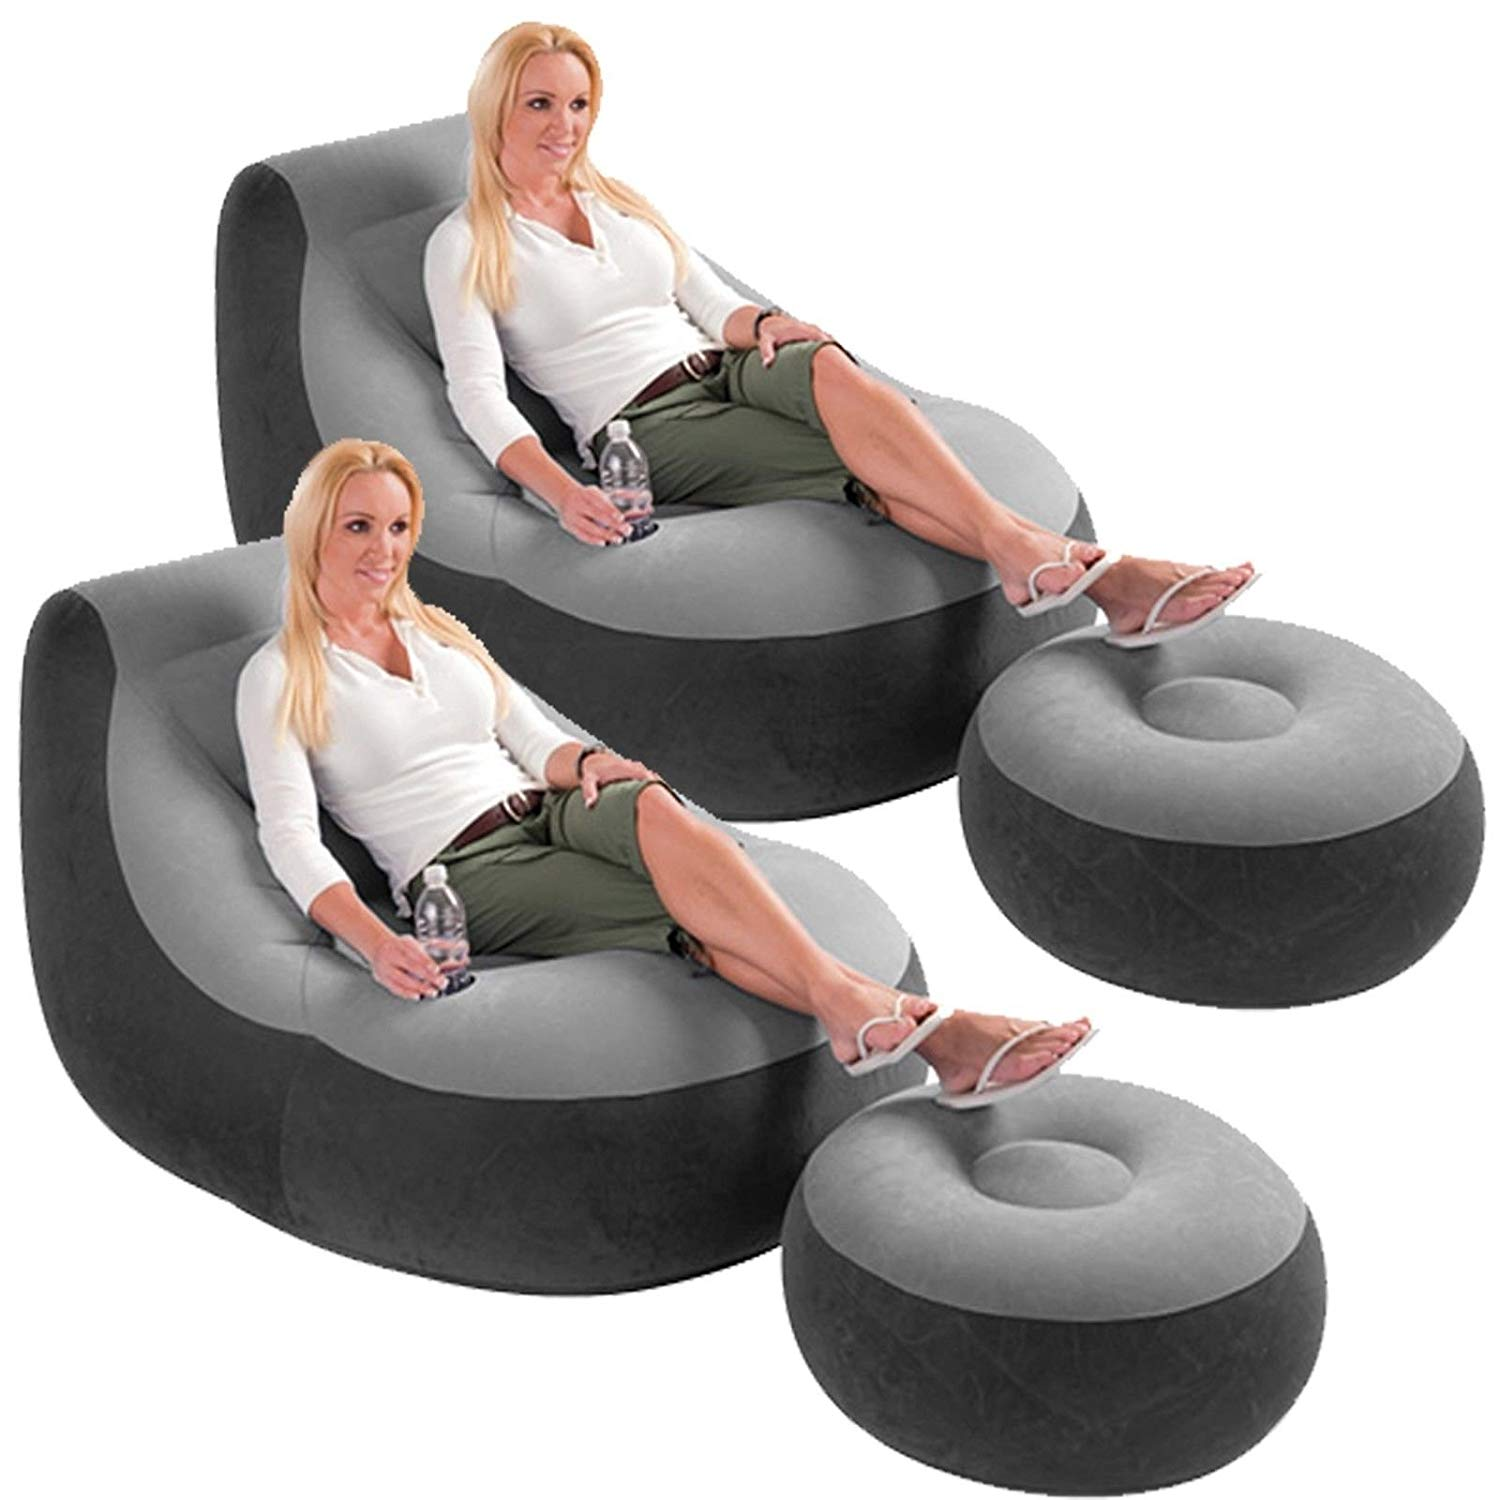 2 Pack Intex Ultra Lounge Inflatable Chair w/ Ottoman Sofa Dorm Gaming Chair